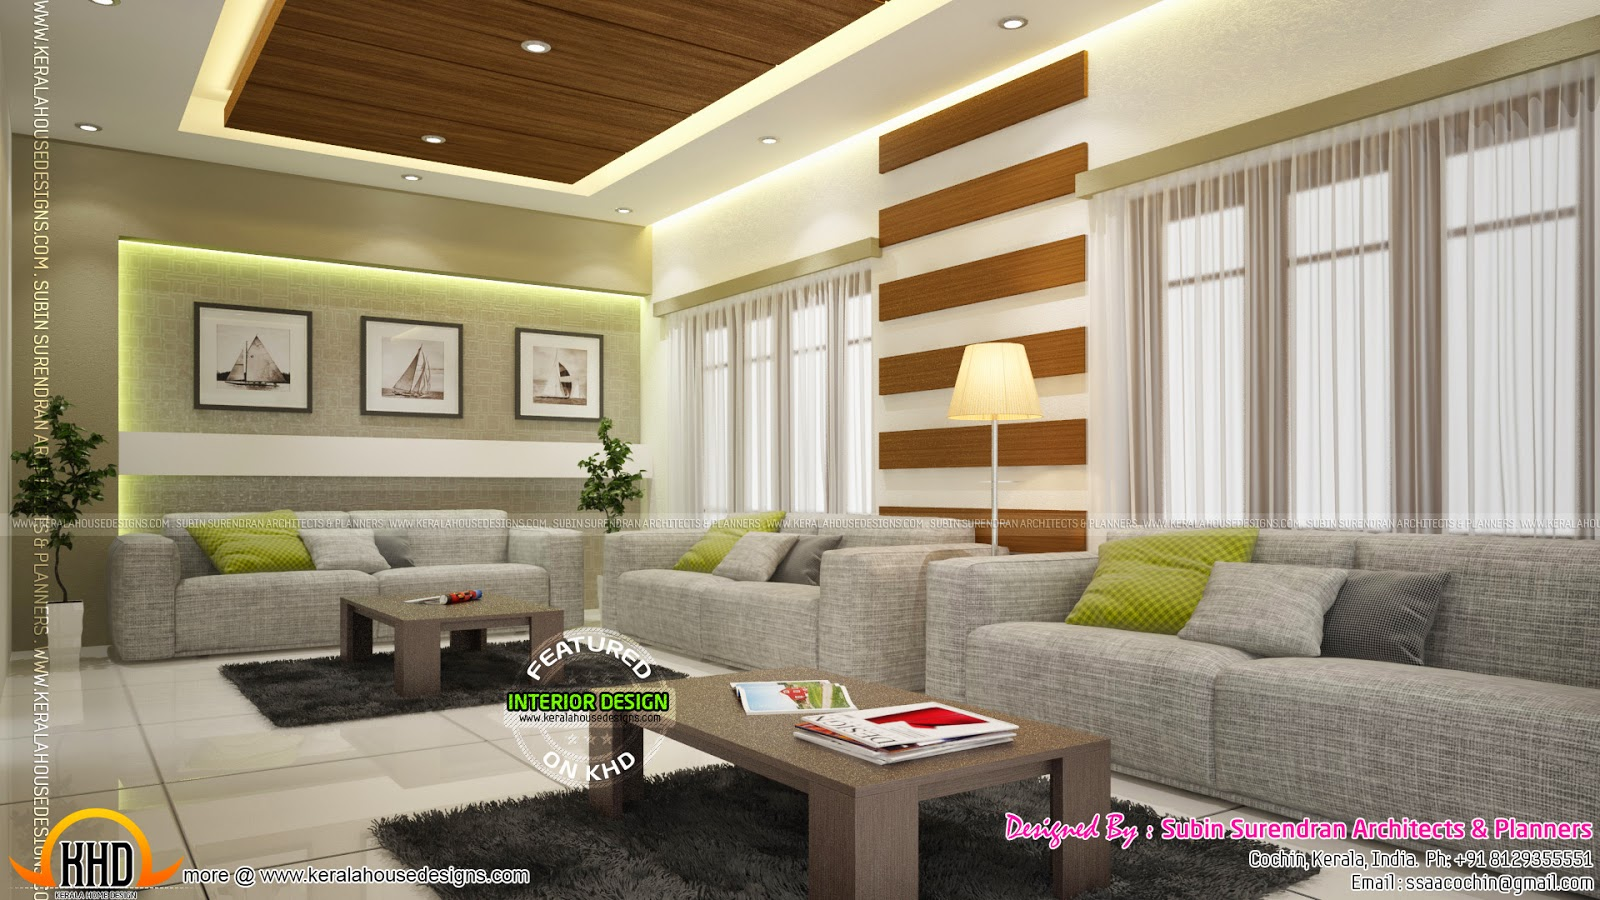 Beautiful home interior designs kerala home design and for Beautiful home design gallery